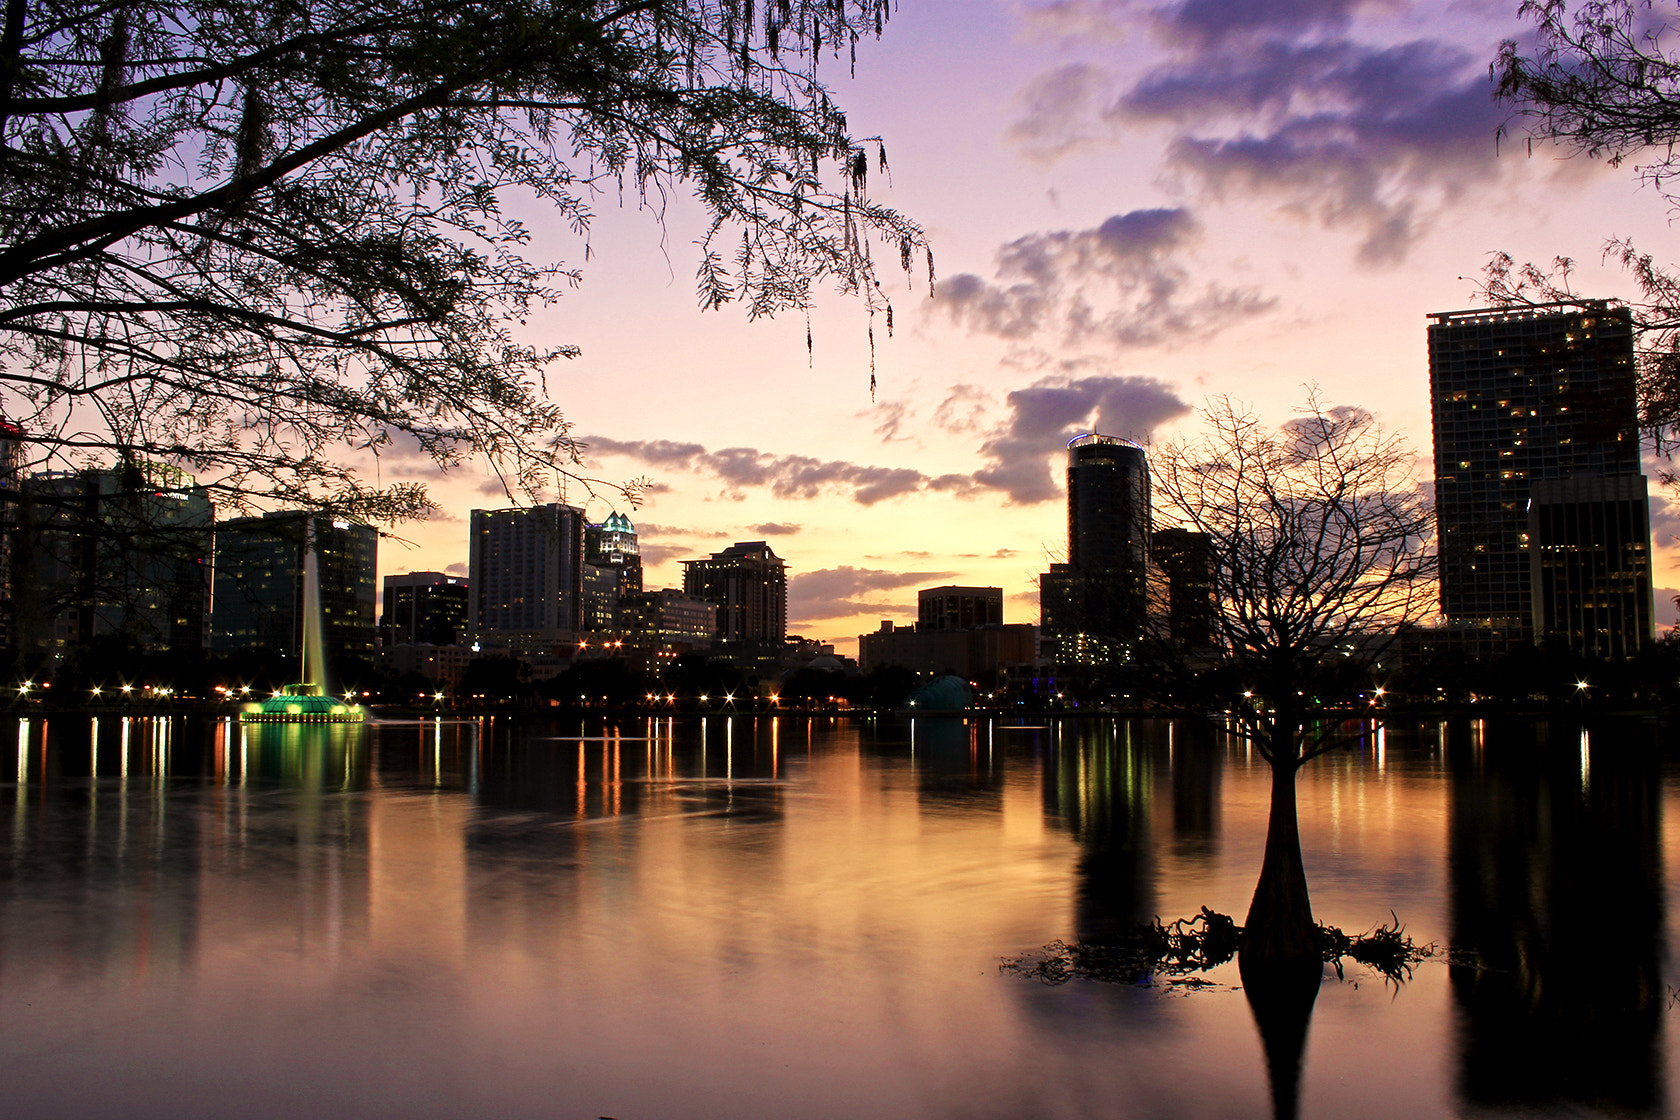 Photograph Lake Eola by Cody Sanfilippo on 500px